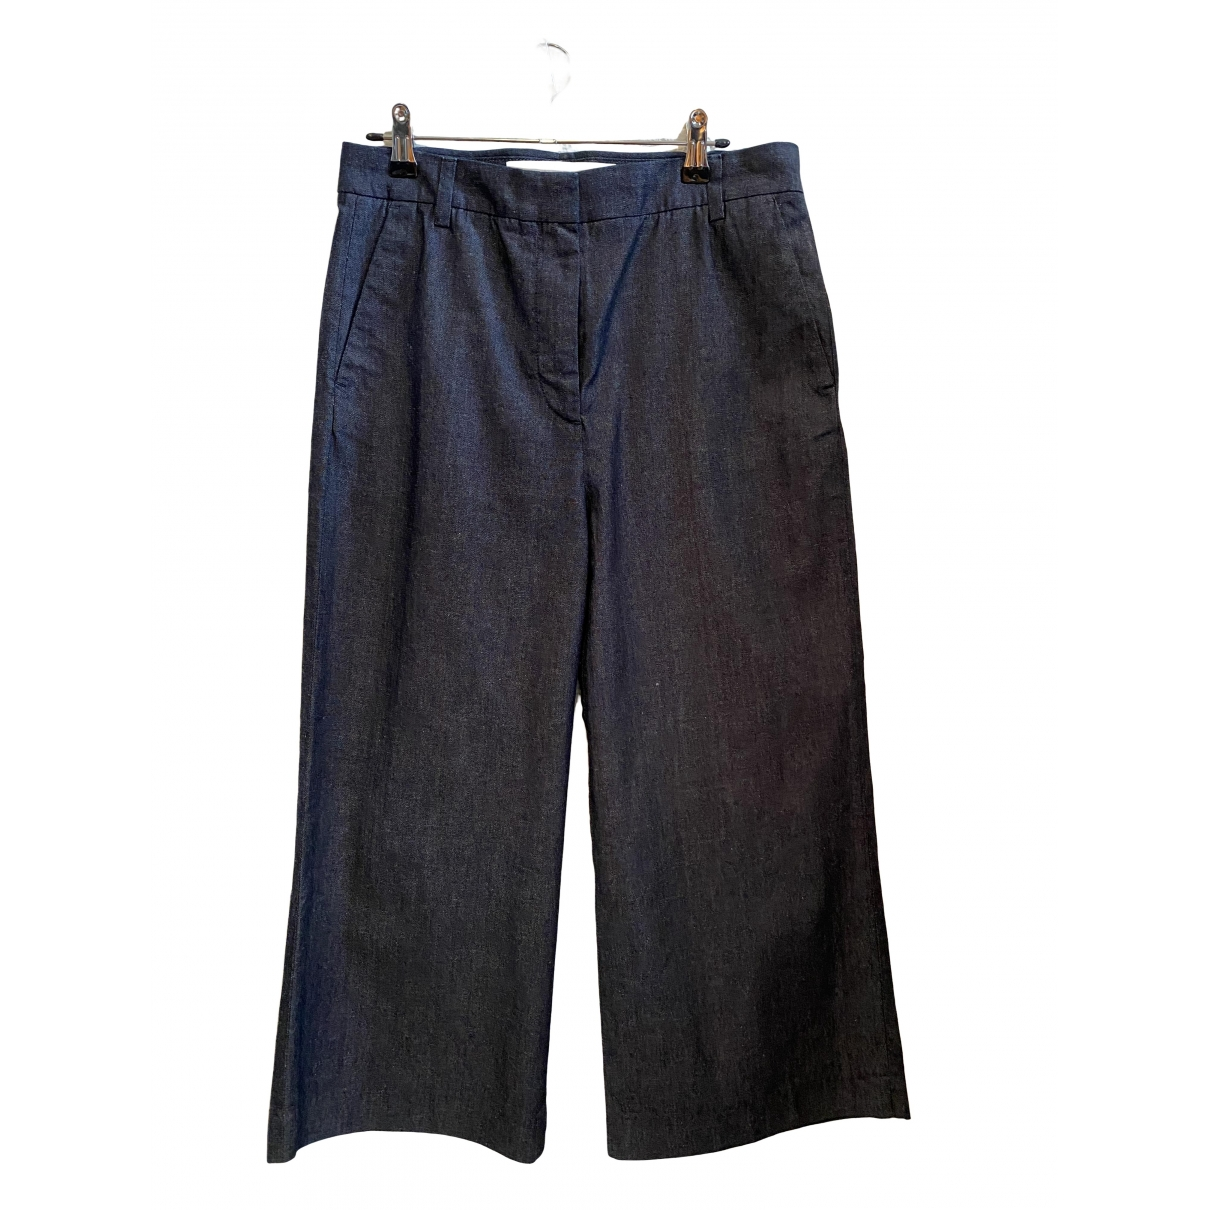 Victoria, Victoria Beckham \N Navy Cotton Trousers for Women 8 UK